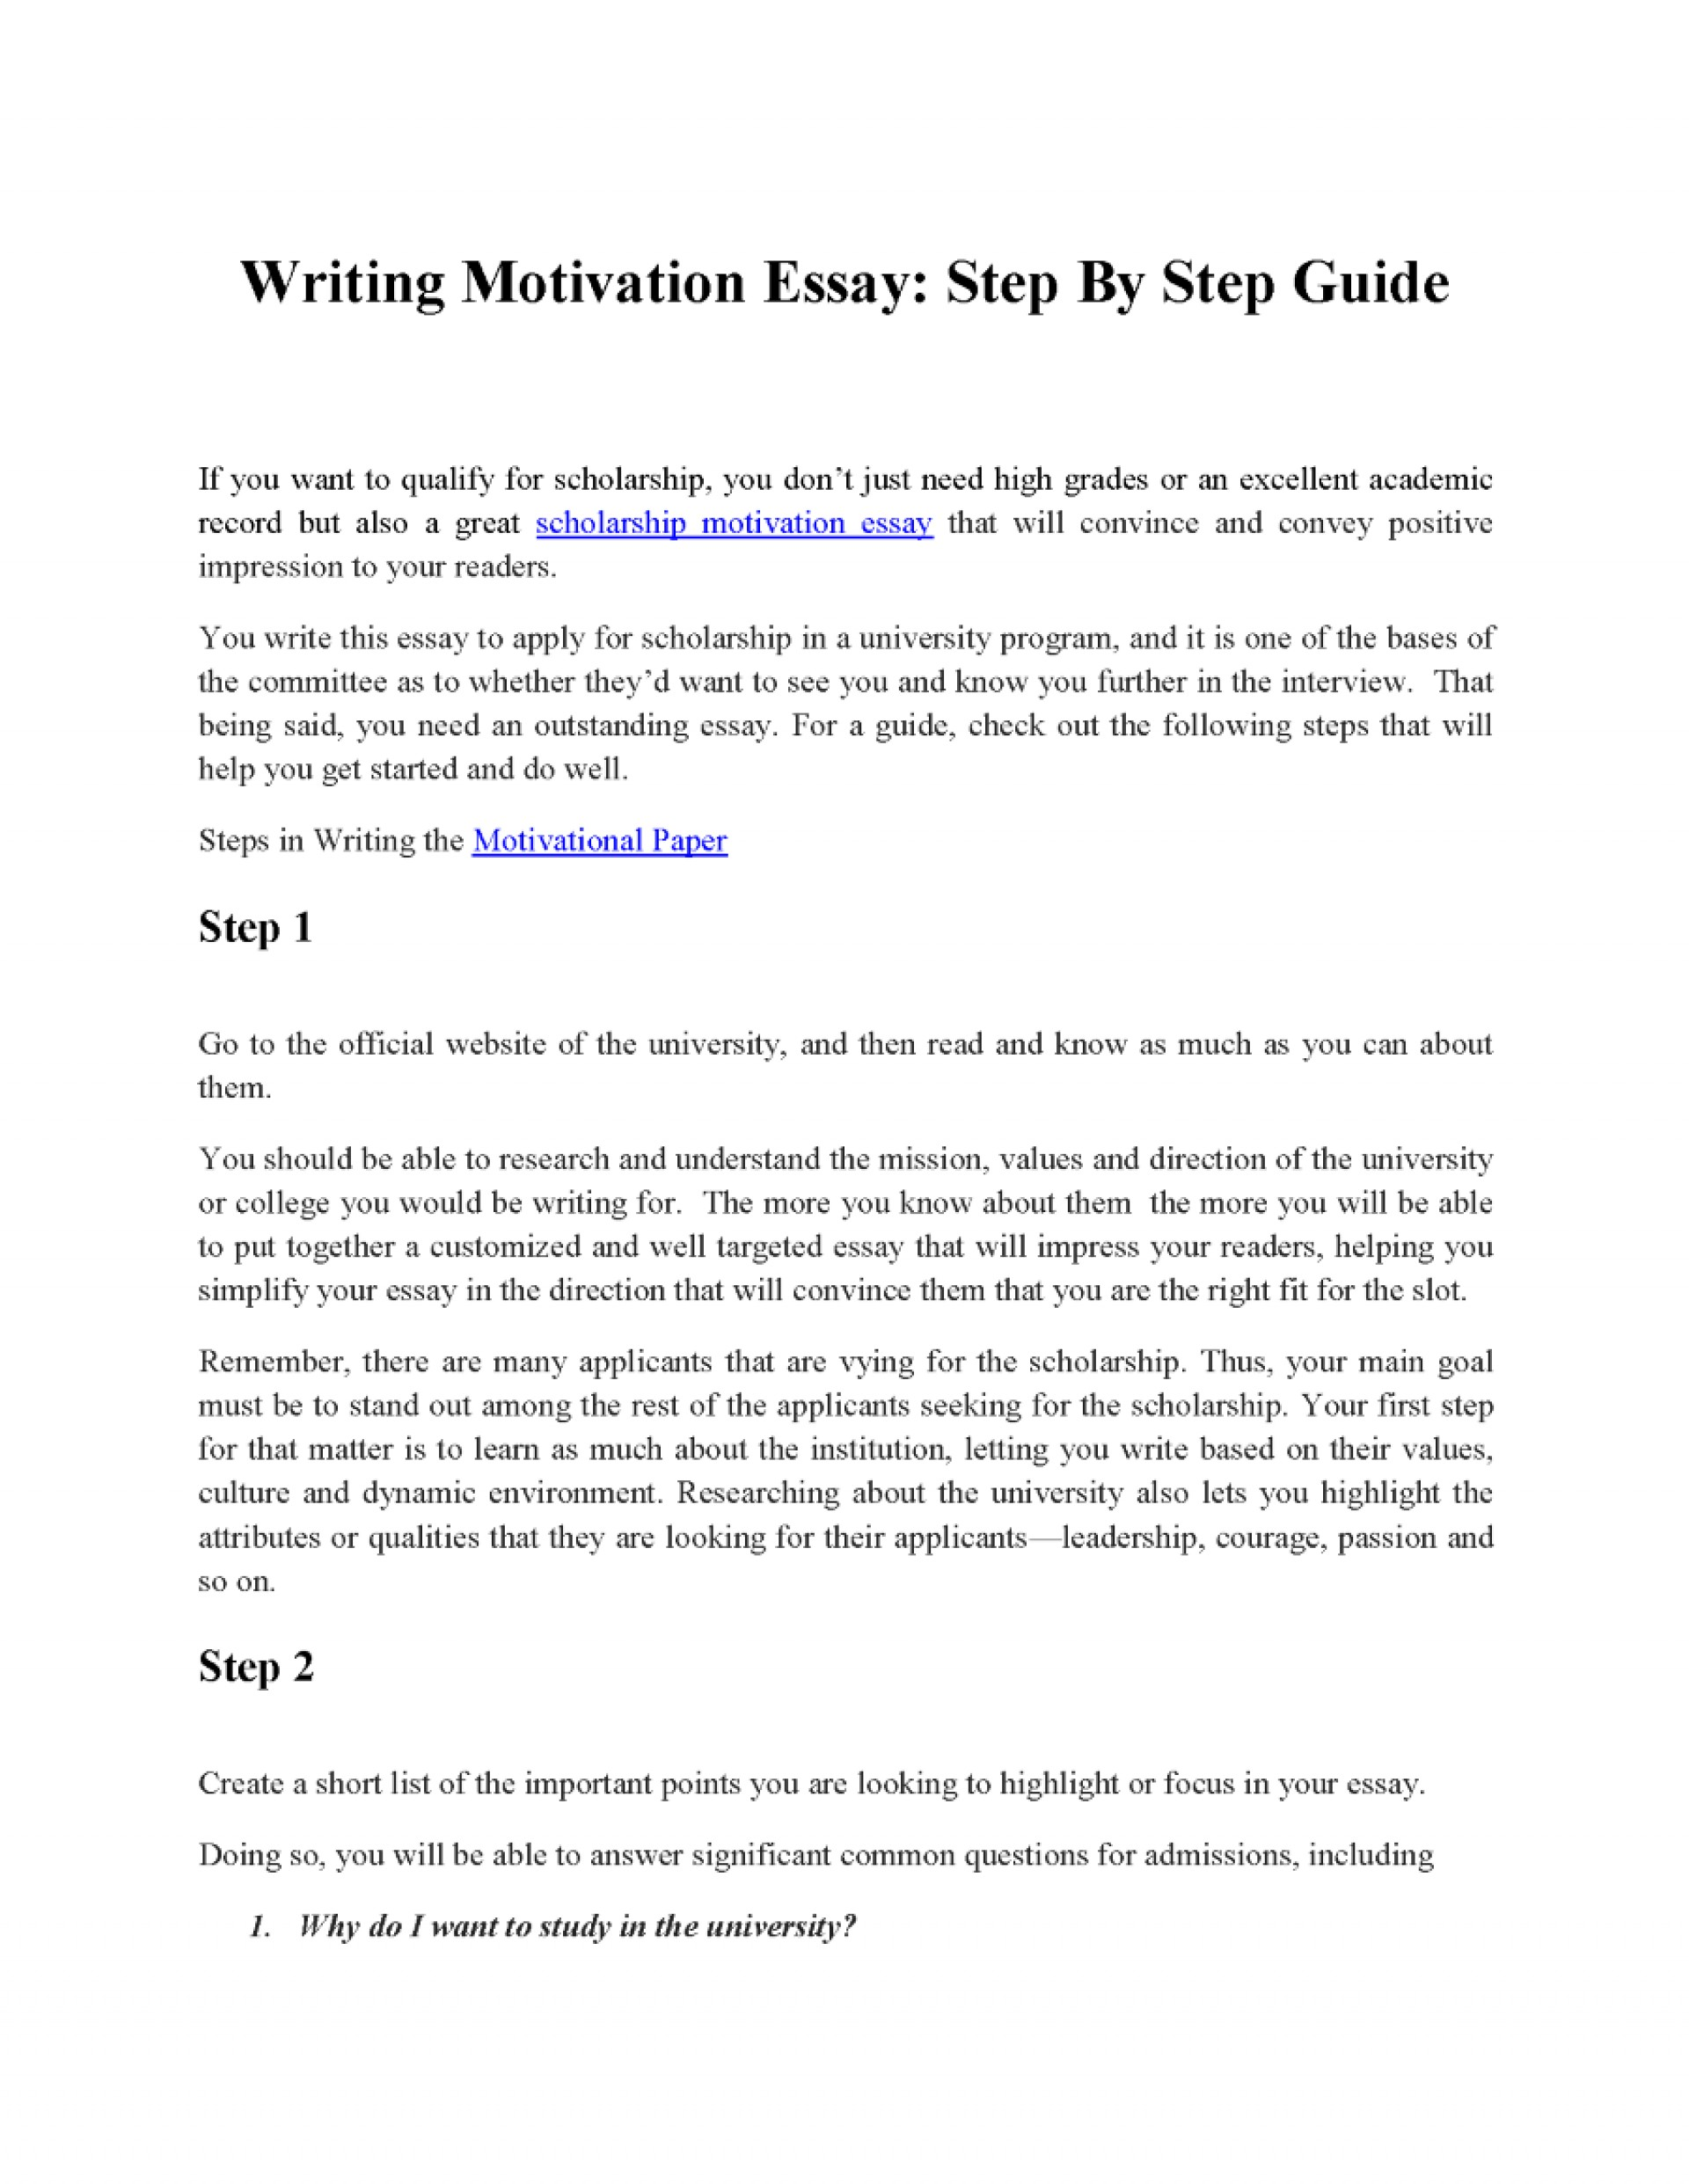 020 Research Paper 2948595 636128784141107500 Slide1 Fs Steps For Writing Unforgettable 10 A In The Markman Pdf To Write Basic 1920